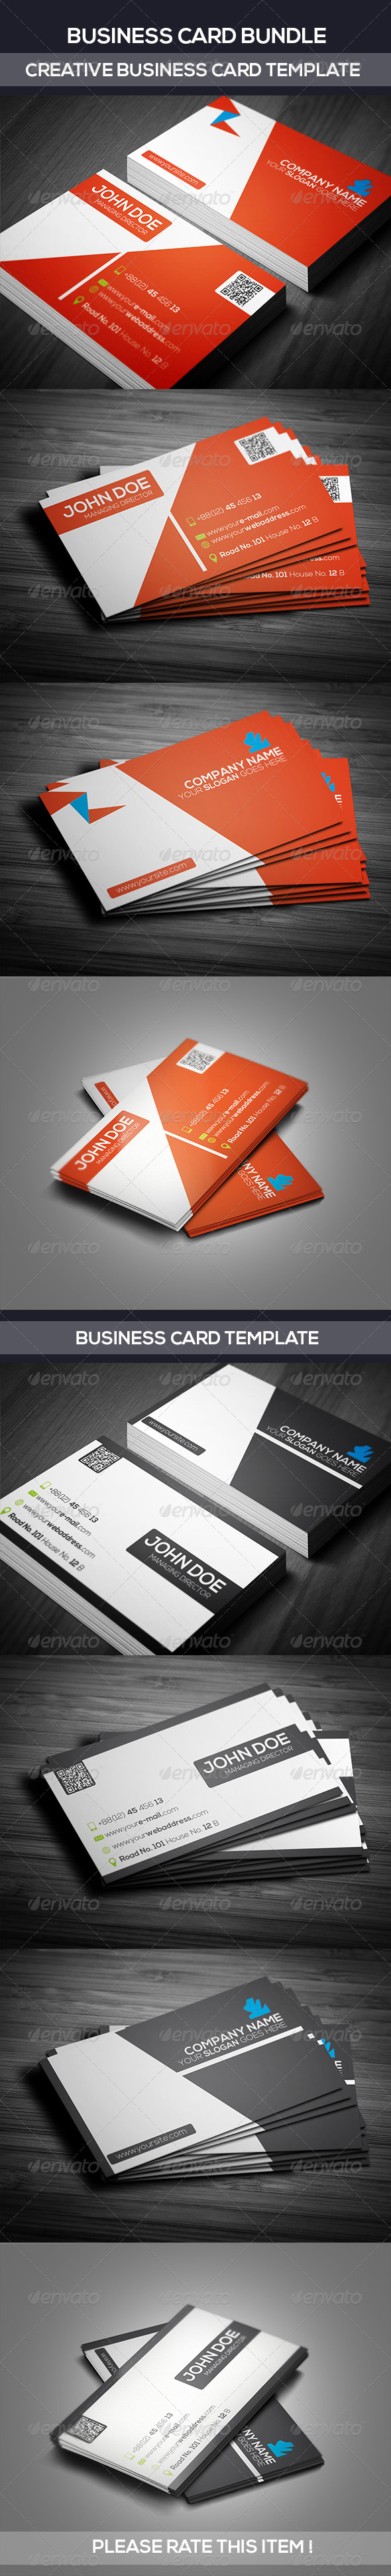 GraphicRiver Business Card Bundle 7312991